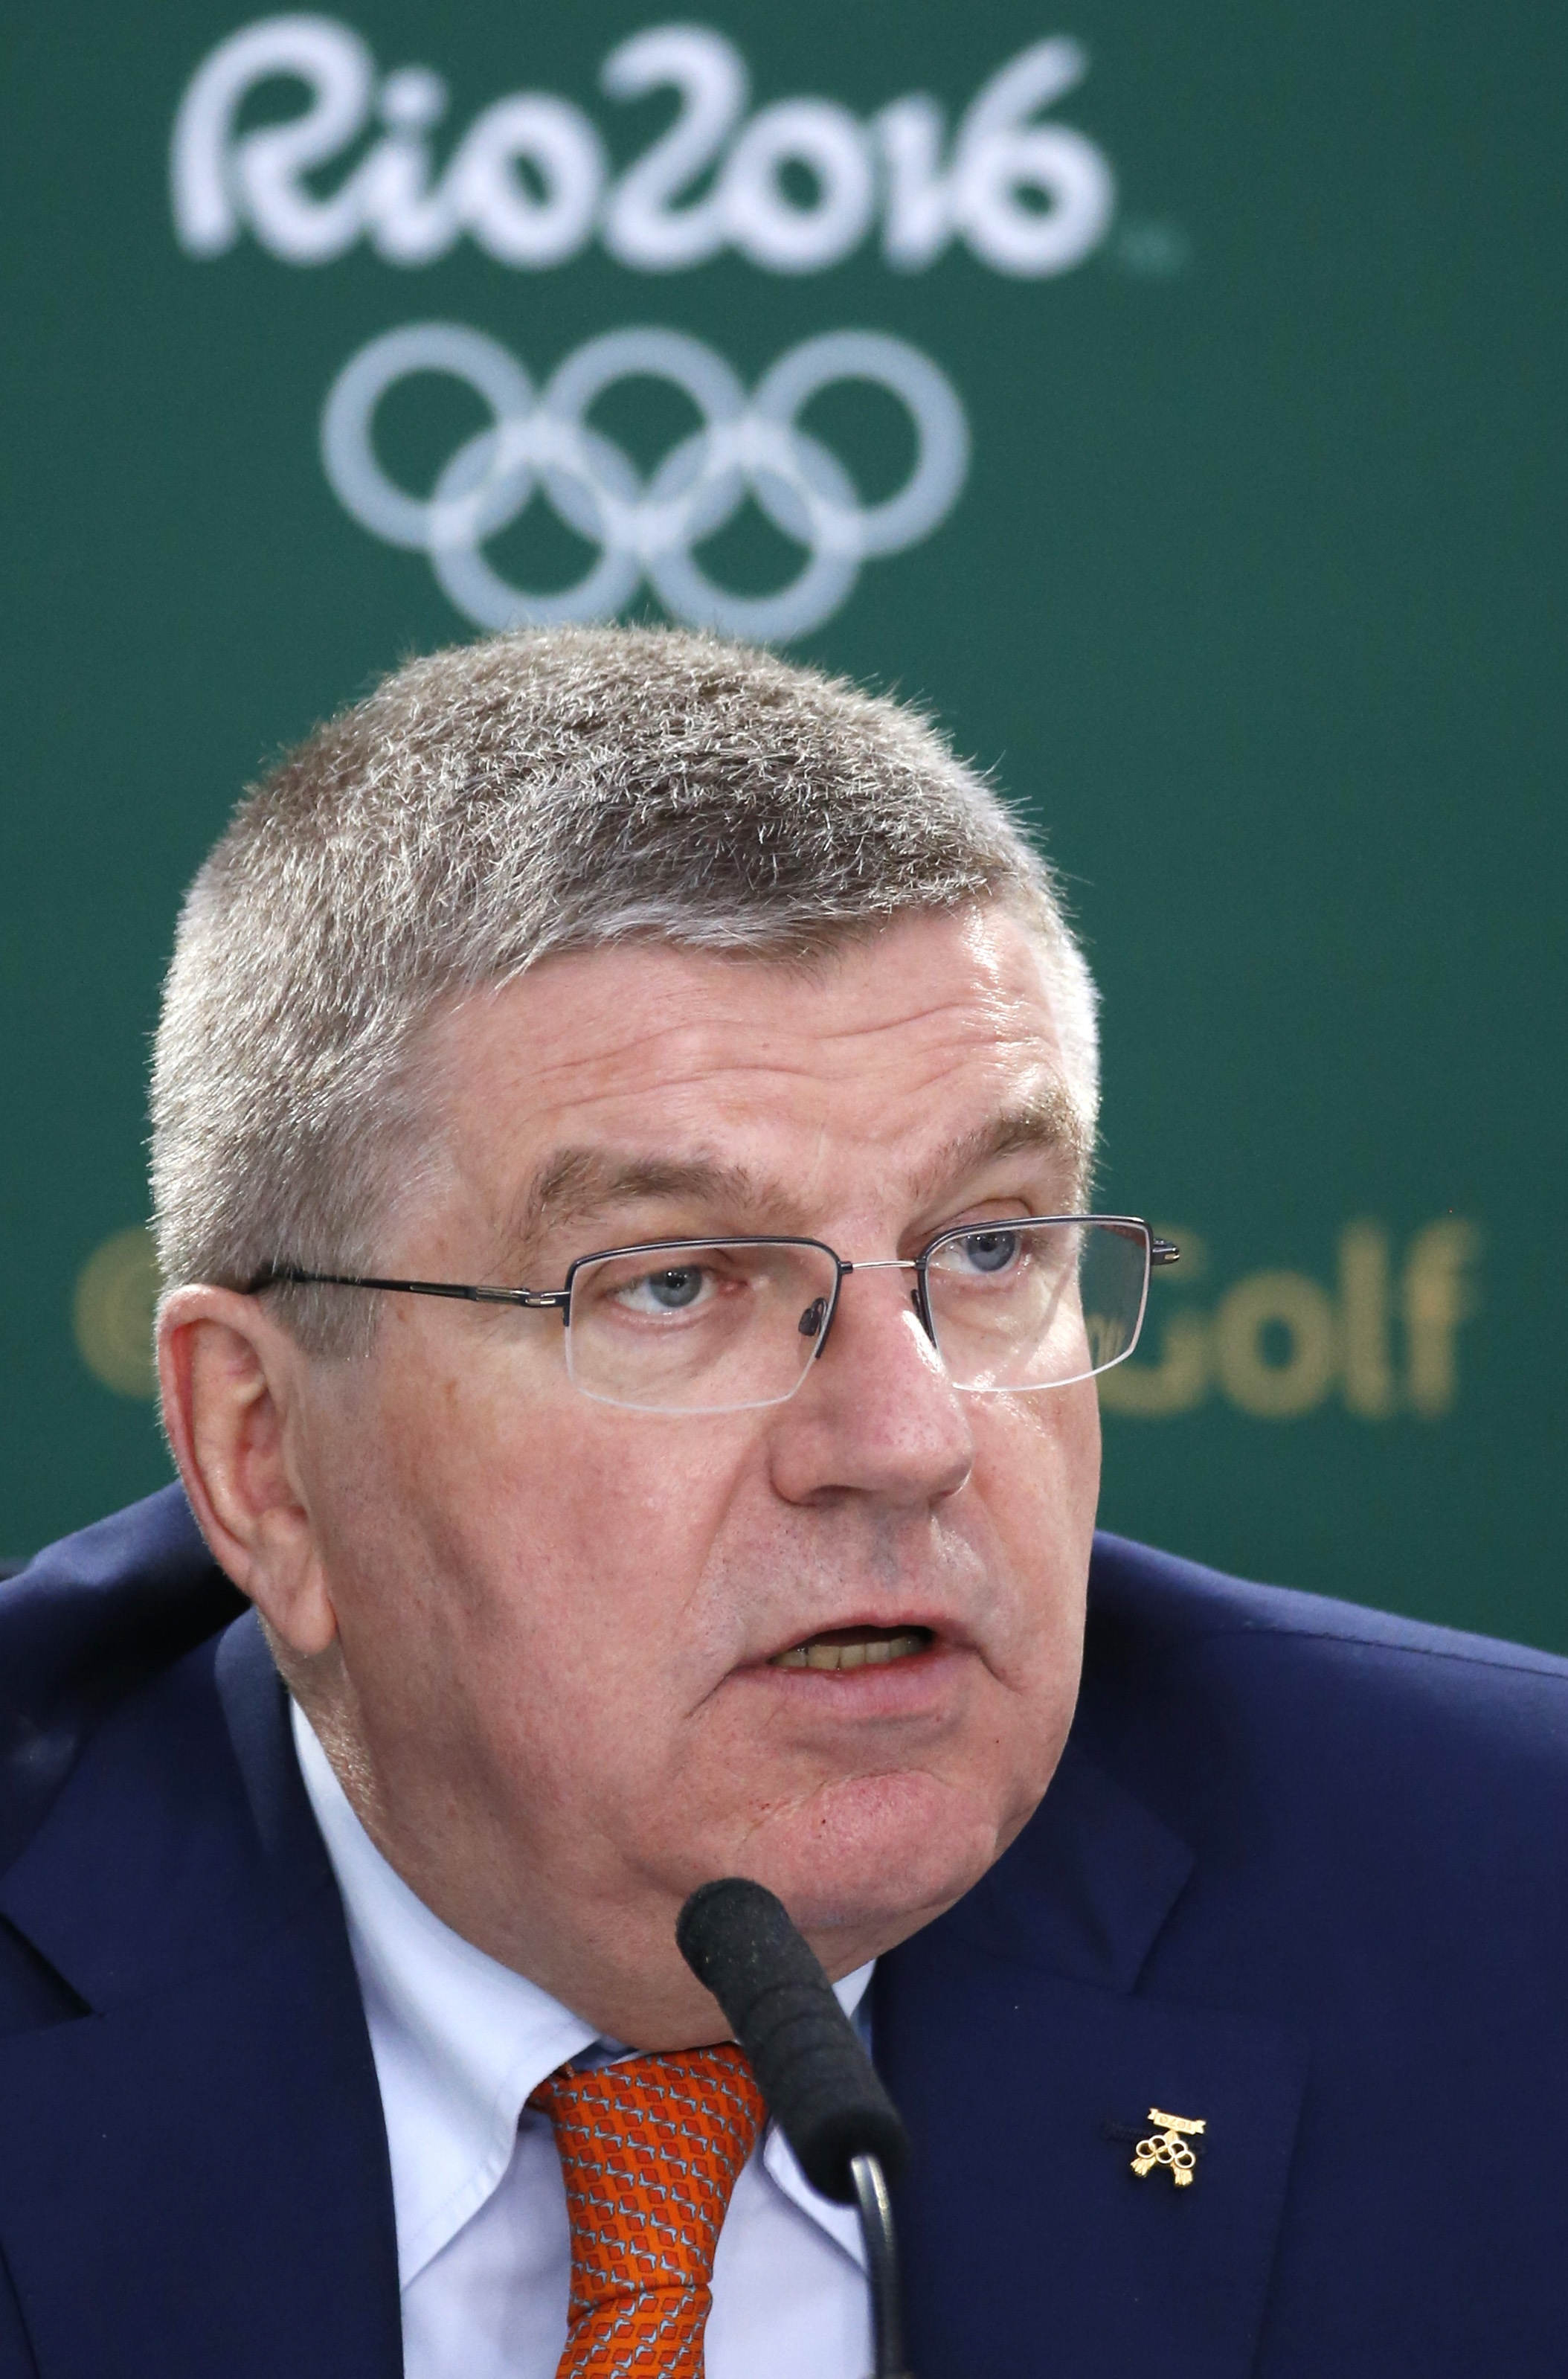 International Olympic Committee president Thomas Bach speaks during a news conference during the second round of the British Open Golf Championship at the Old Course, St. Andrews, Scotland, Saturday, July 18, 2015. Golf will feature at the Rio 2016 Olympi